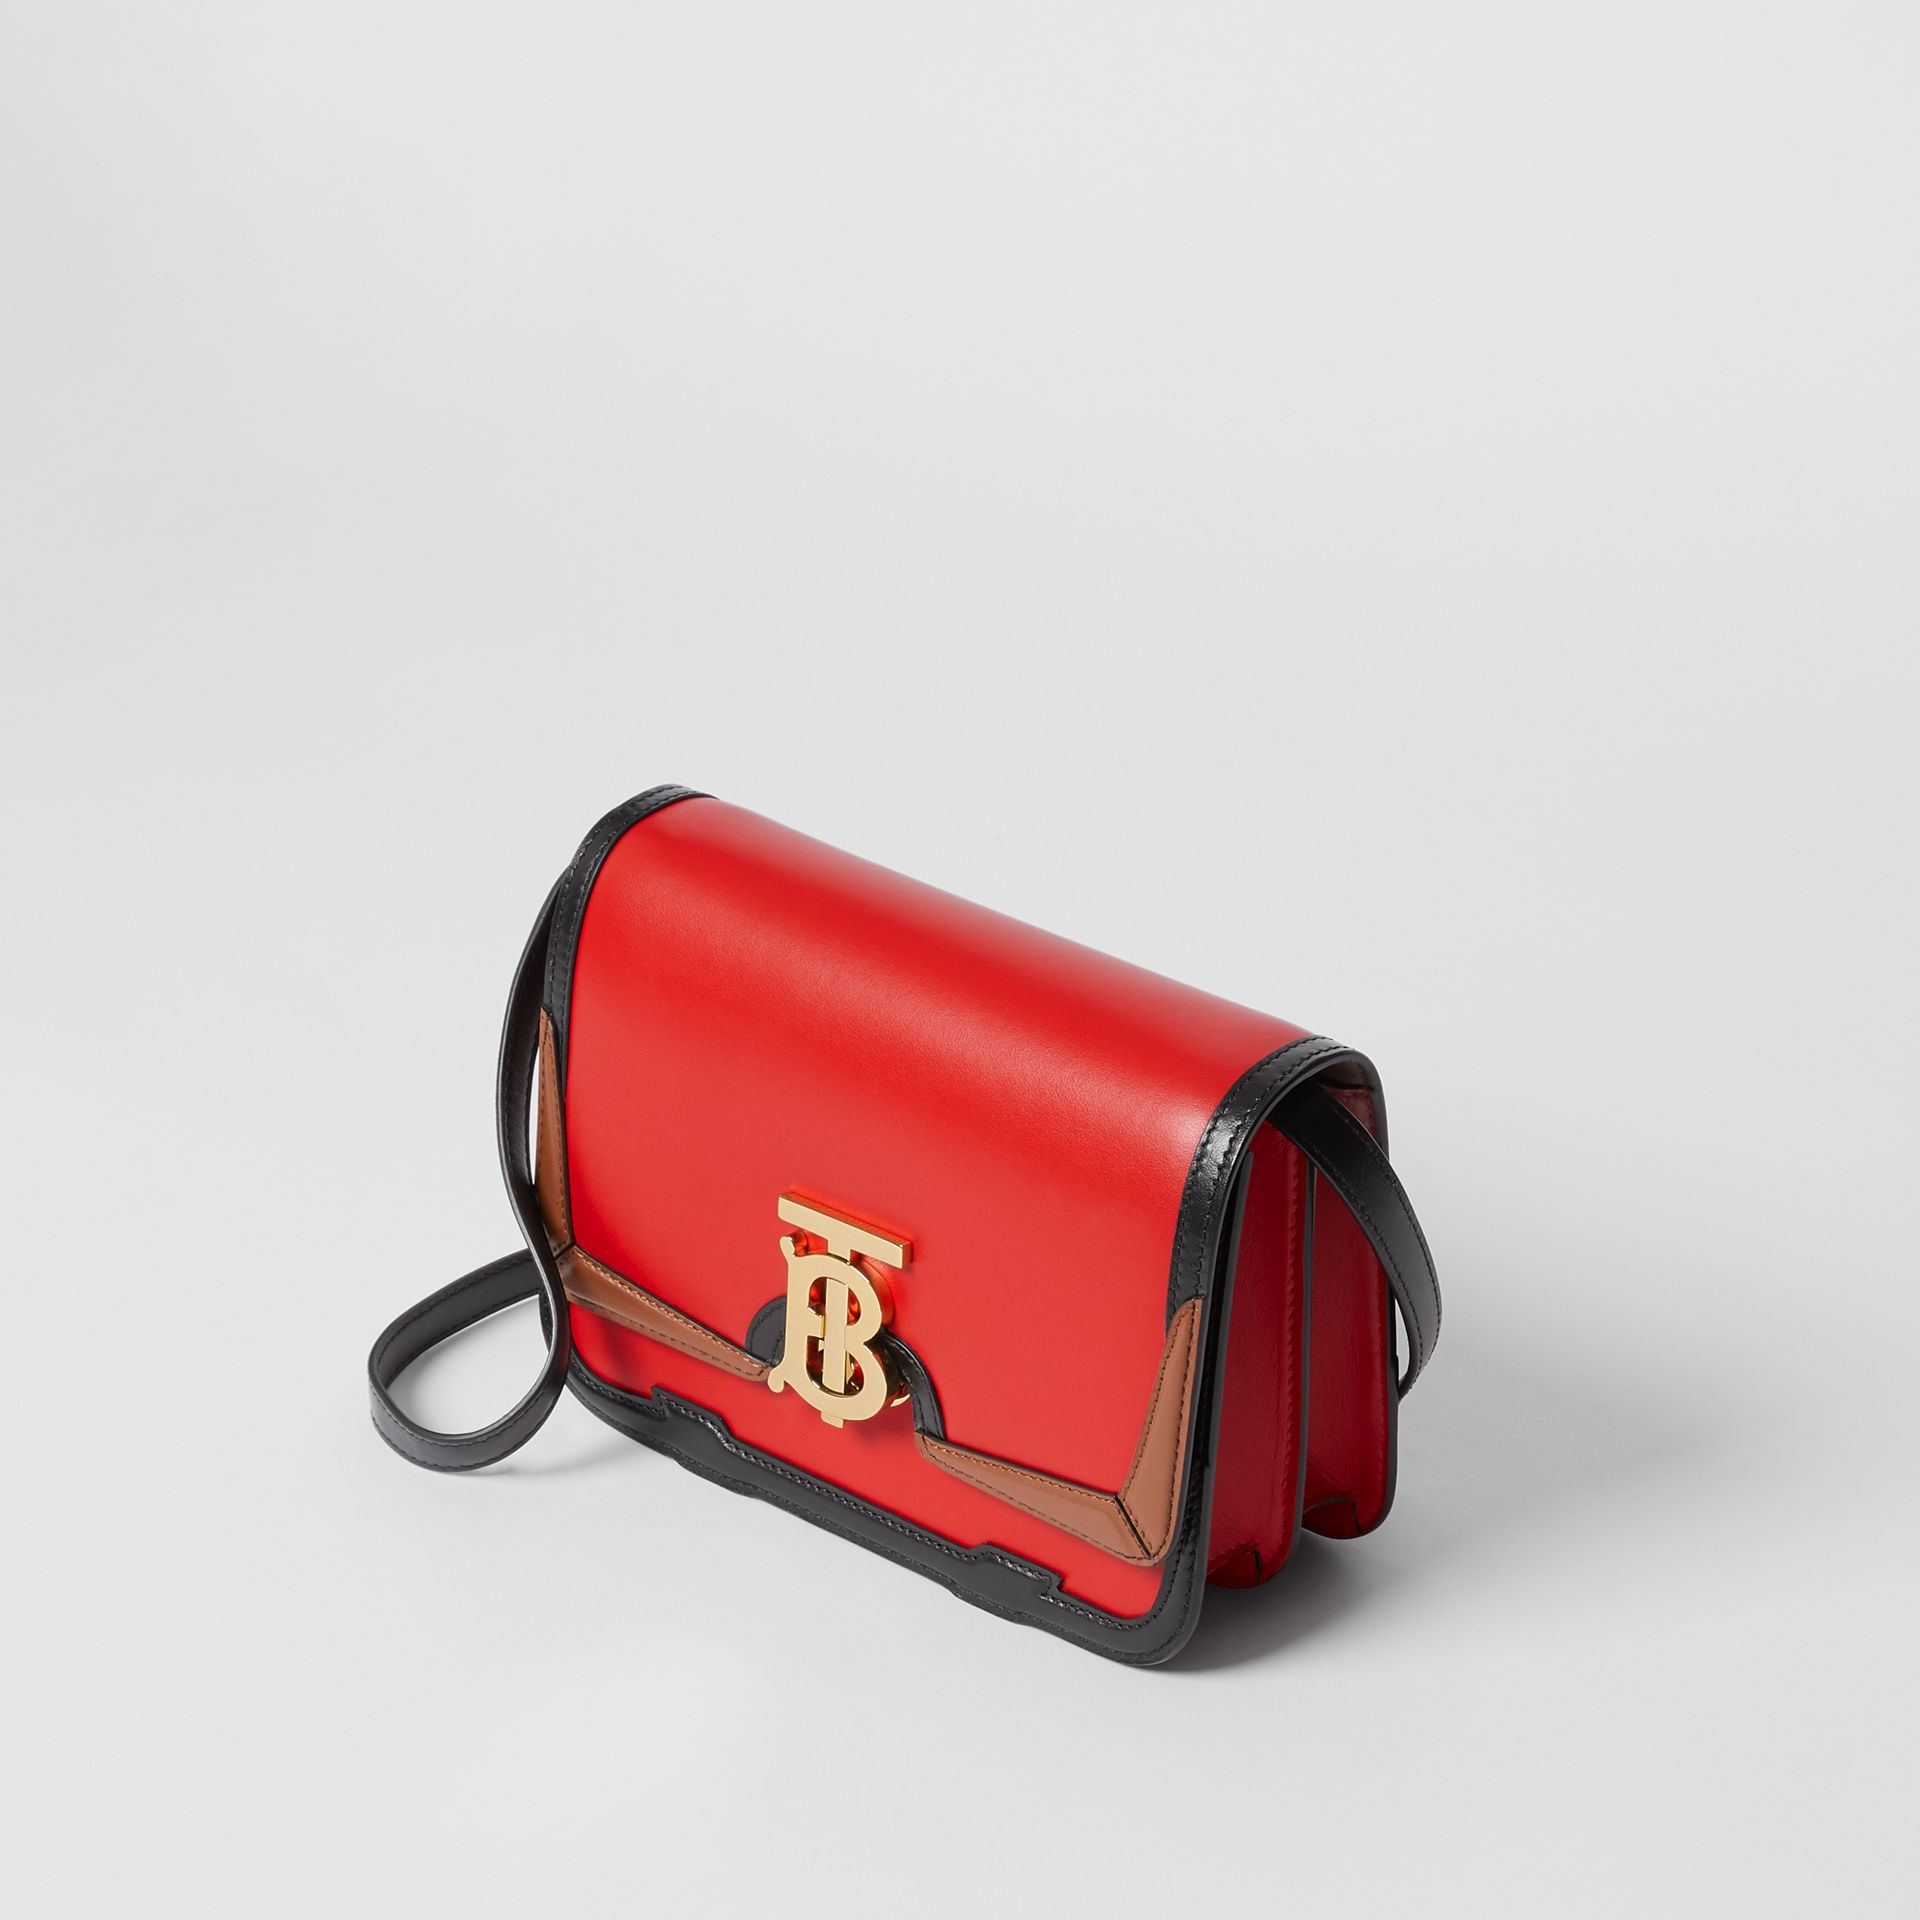 Small Appliqué Leather TB Bag in Bright Red - Women | Burberry United States - gallery image 3